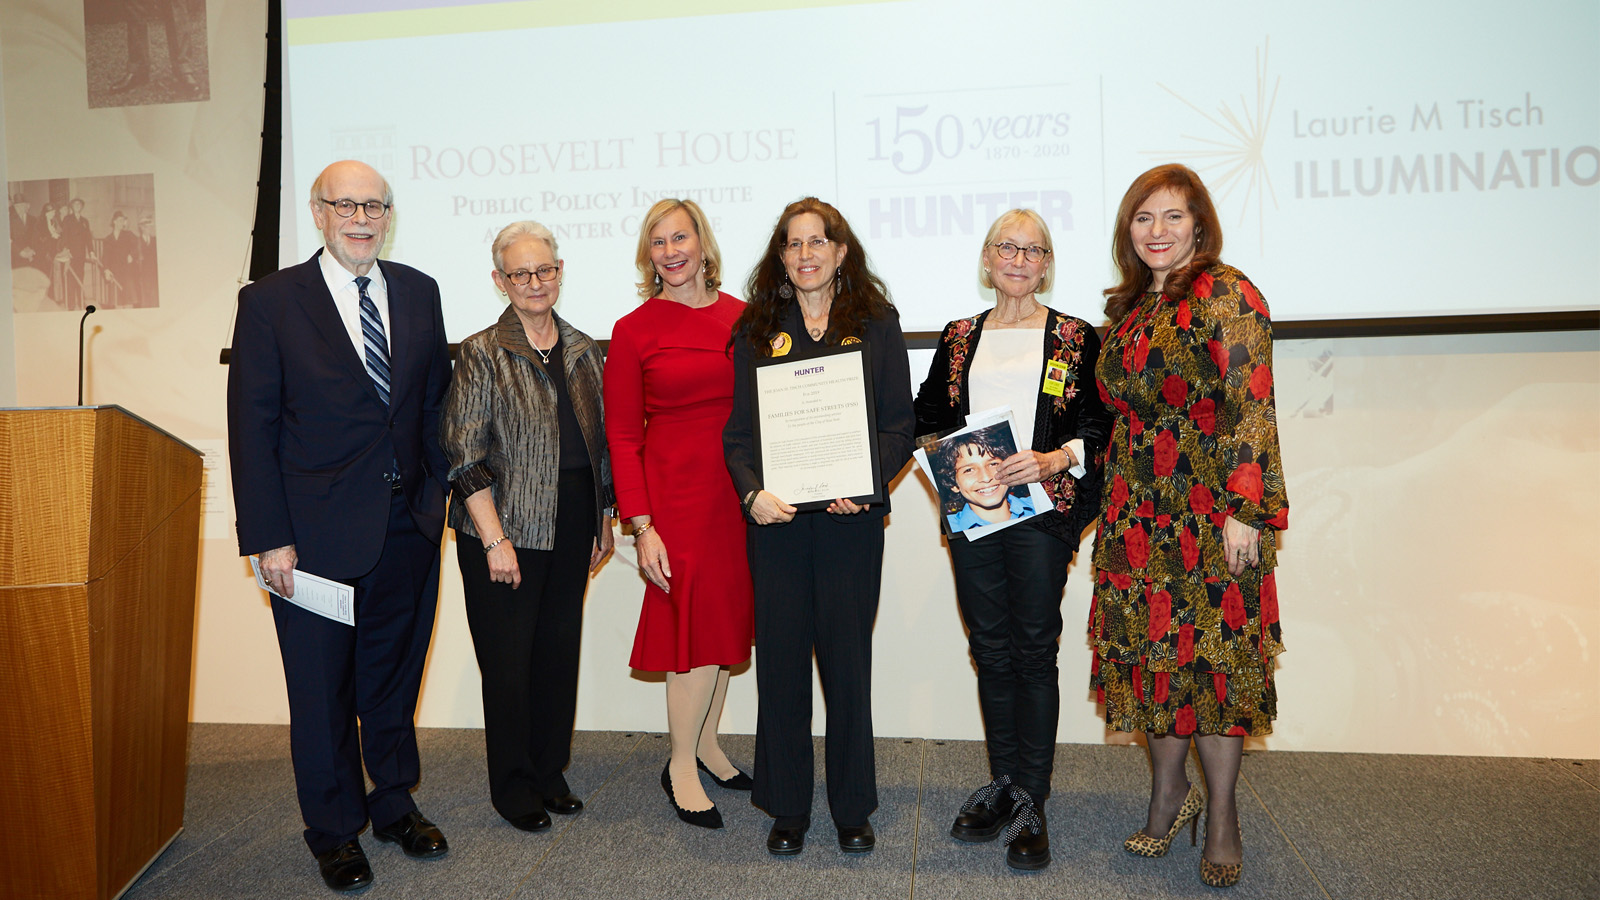 Joan H. Tisch Community Health Prize for Excellence